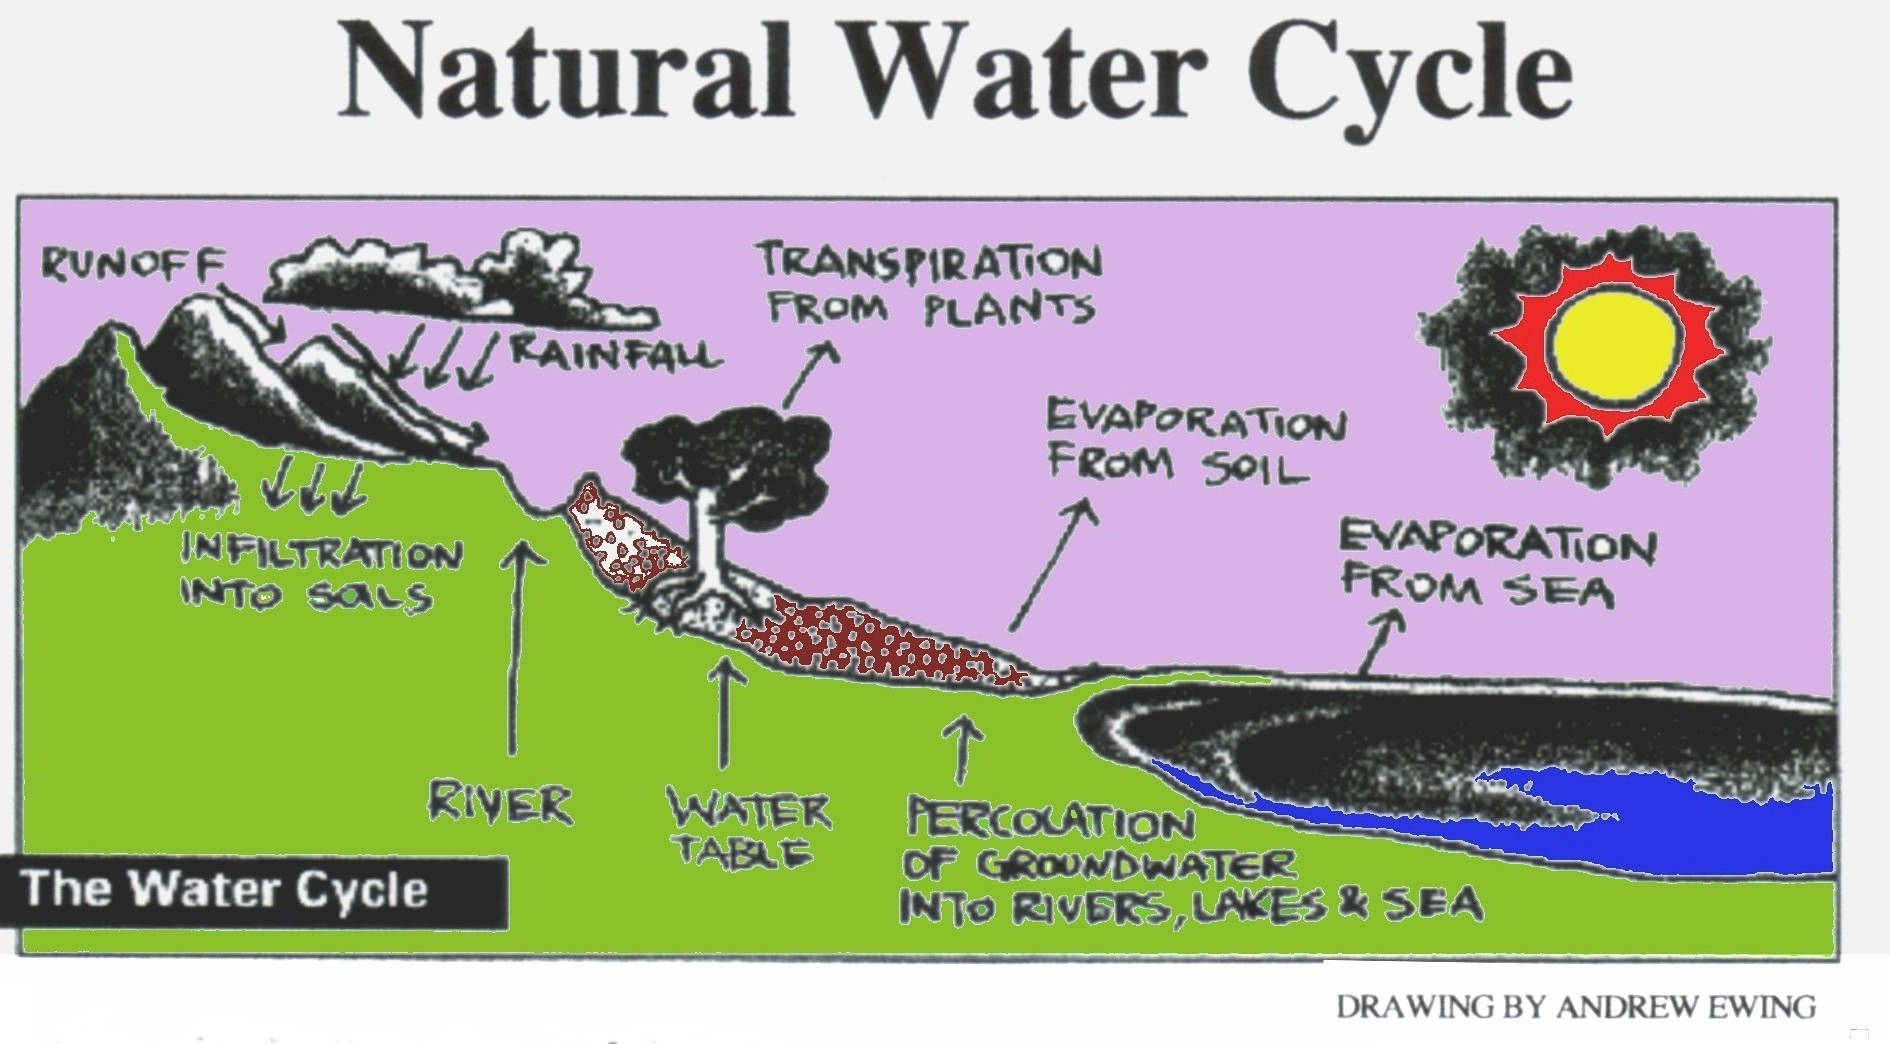 Lightning the water cycle diagram diy wiring diagrams dry lightning archives creation science 4 kids rh creationscience4kids com 5th grade water cycle diagram simple ccuart Gallery